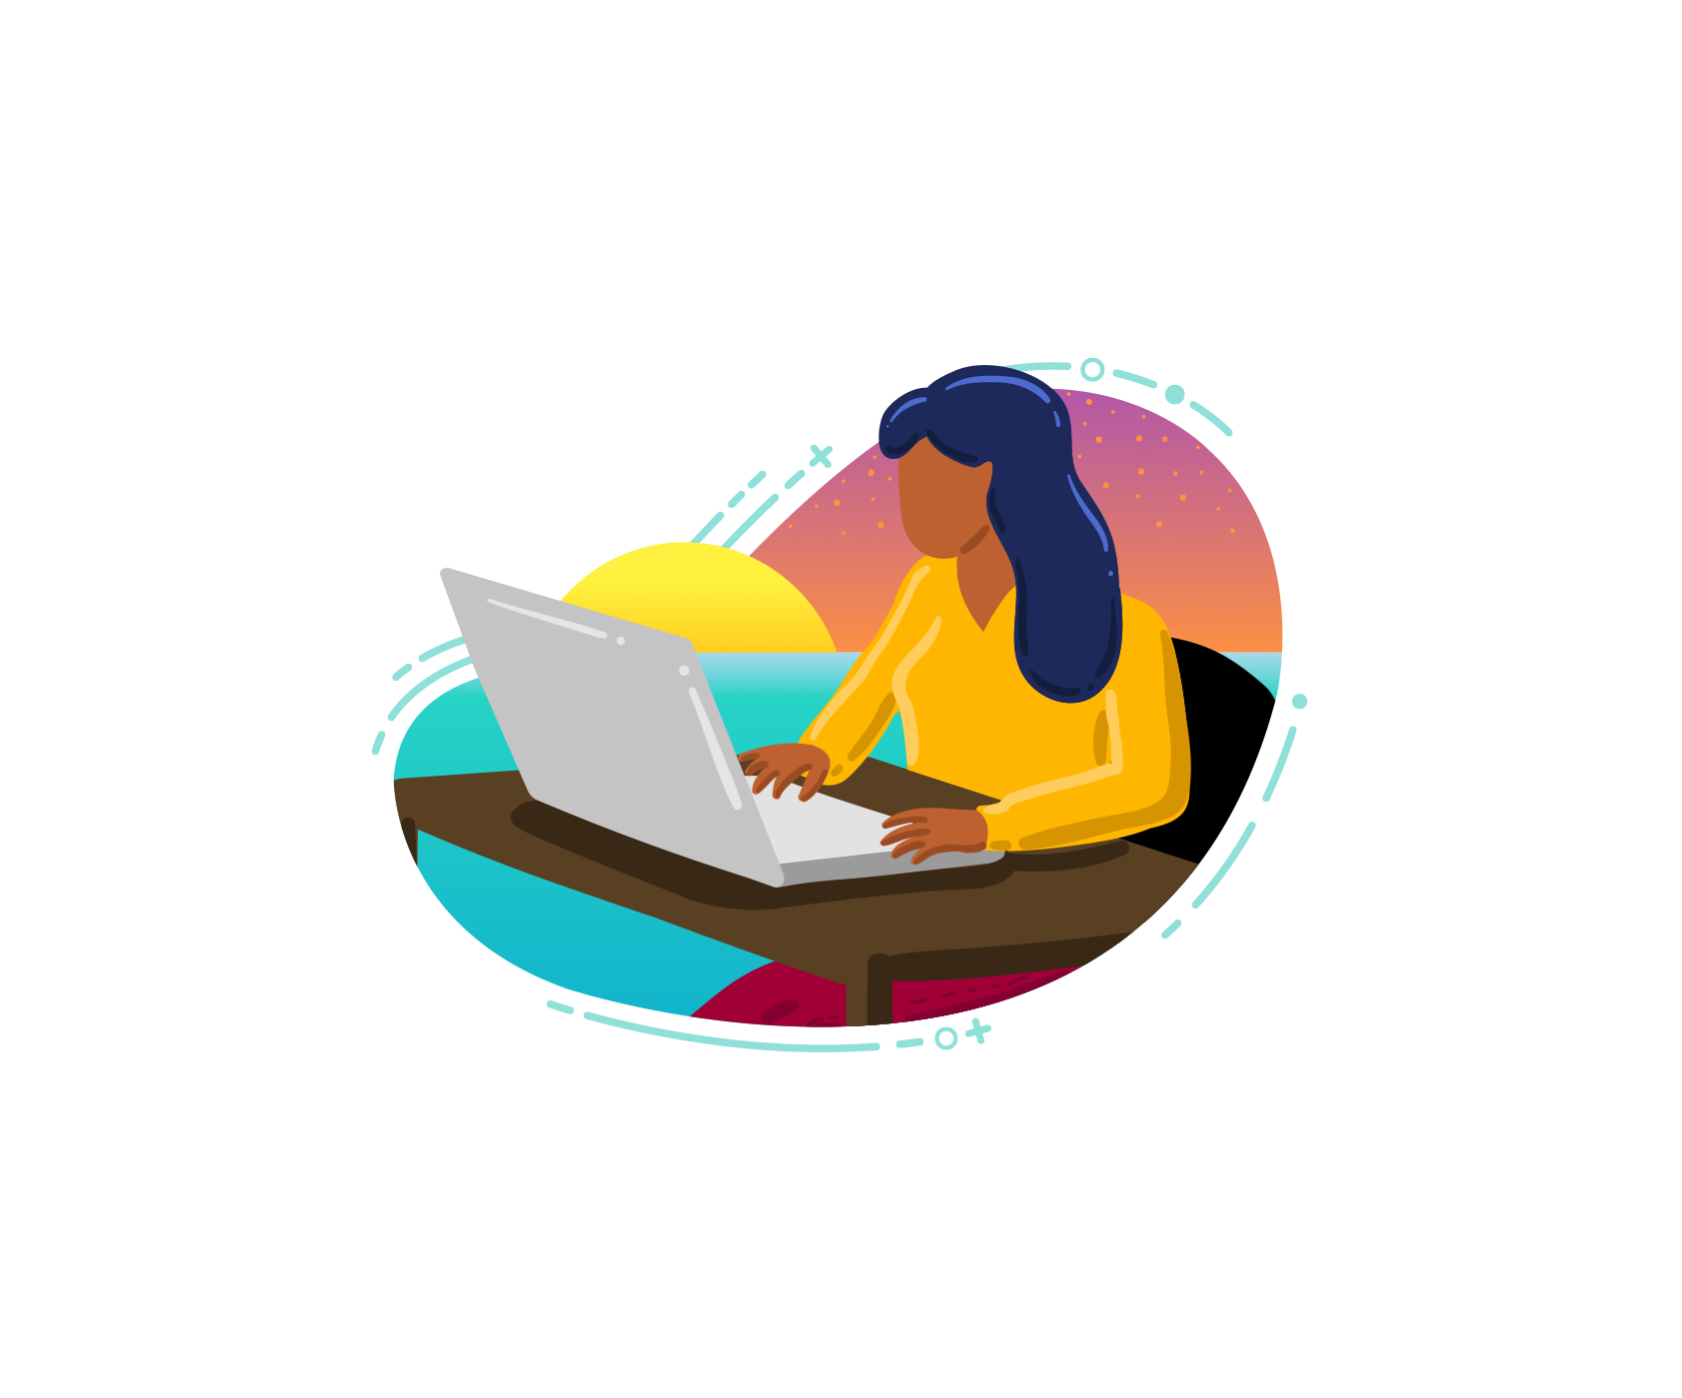 Illustration of a woman employee at the computer on her island